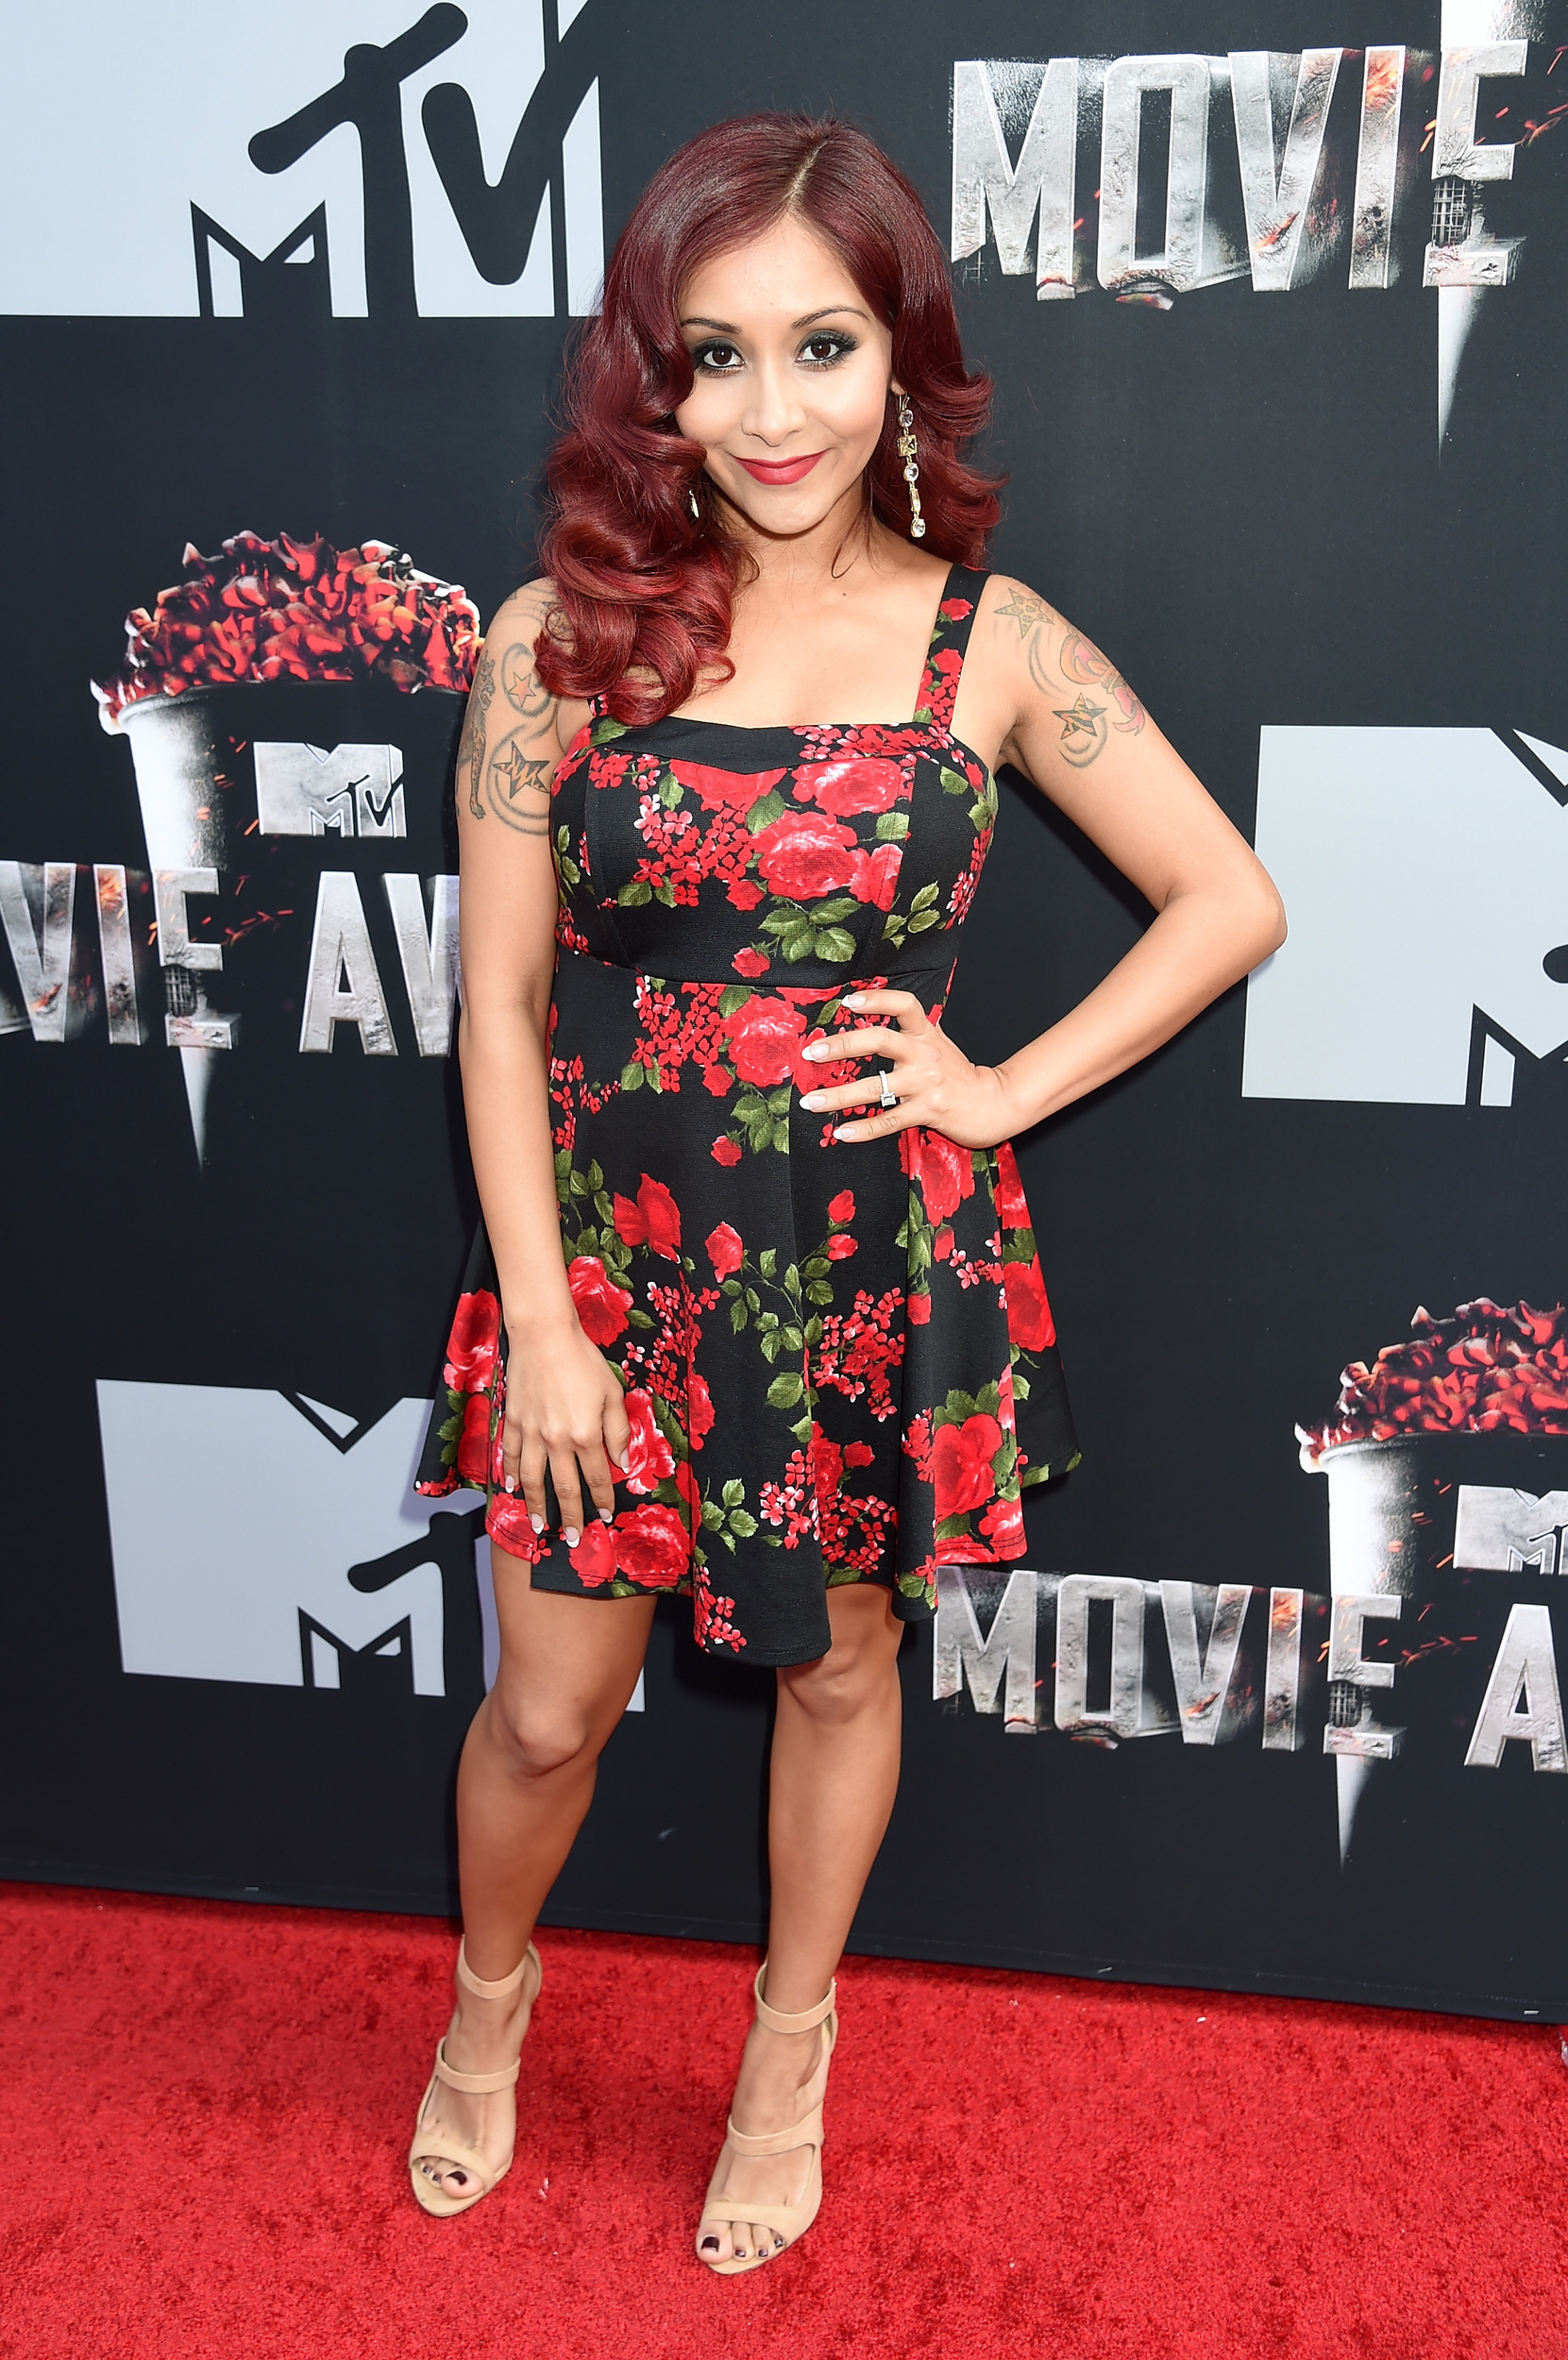 Mtv movie awards red carpet review pictures